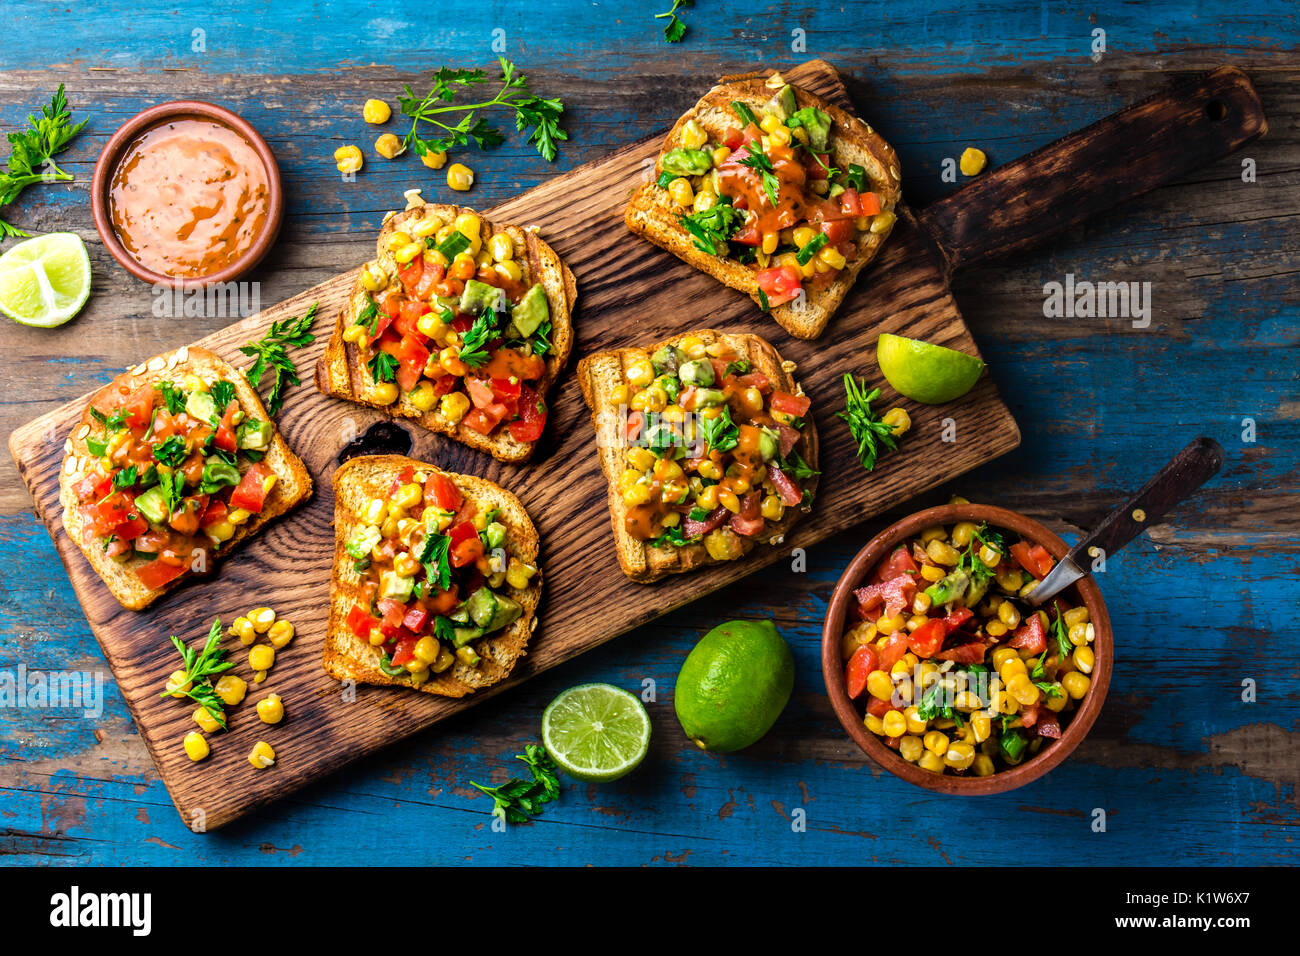 Mexican latin american style open sandwiches vegetarian toasts with mexican latin american style open sandwiches vegetarian toasts with maize avocado tomatoes on wooden board rustic wooden blue background top view forumfinder Image collections